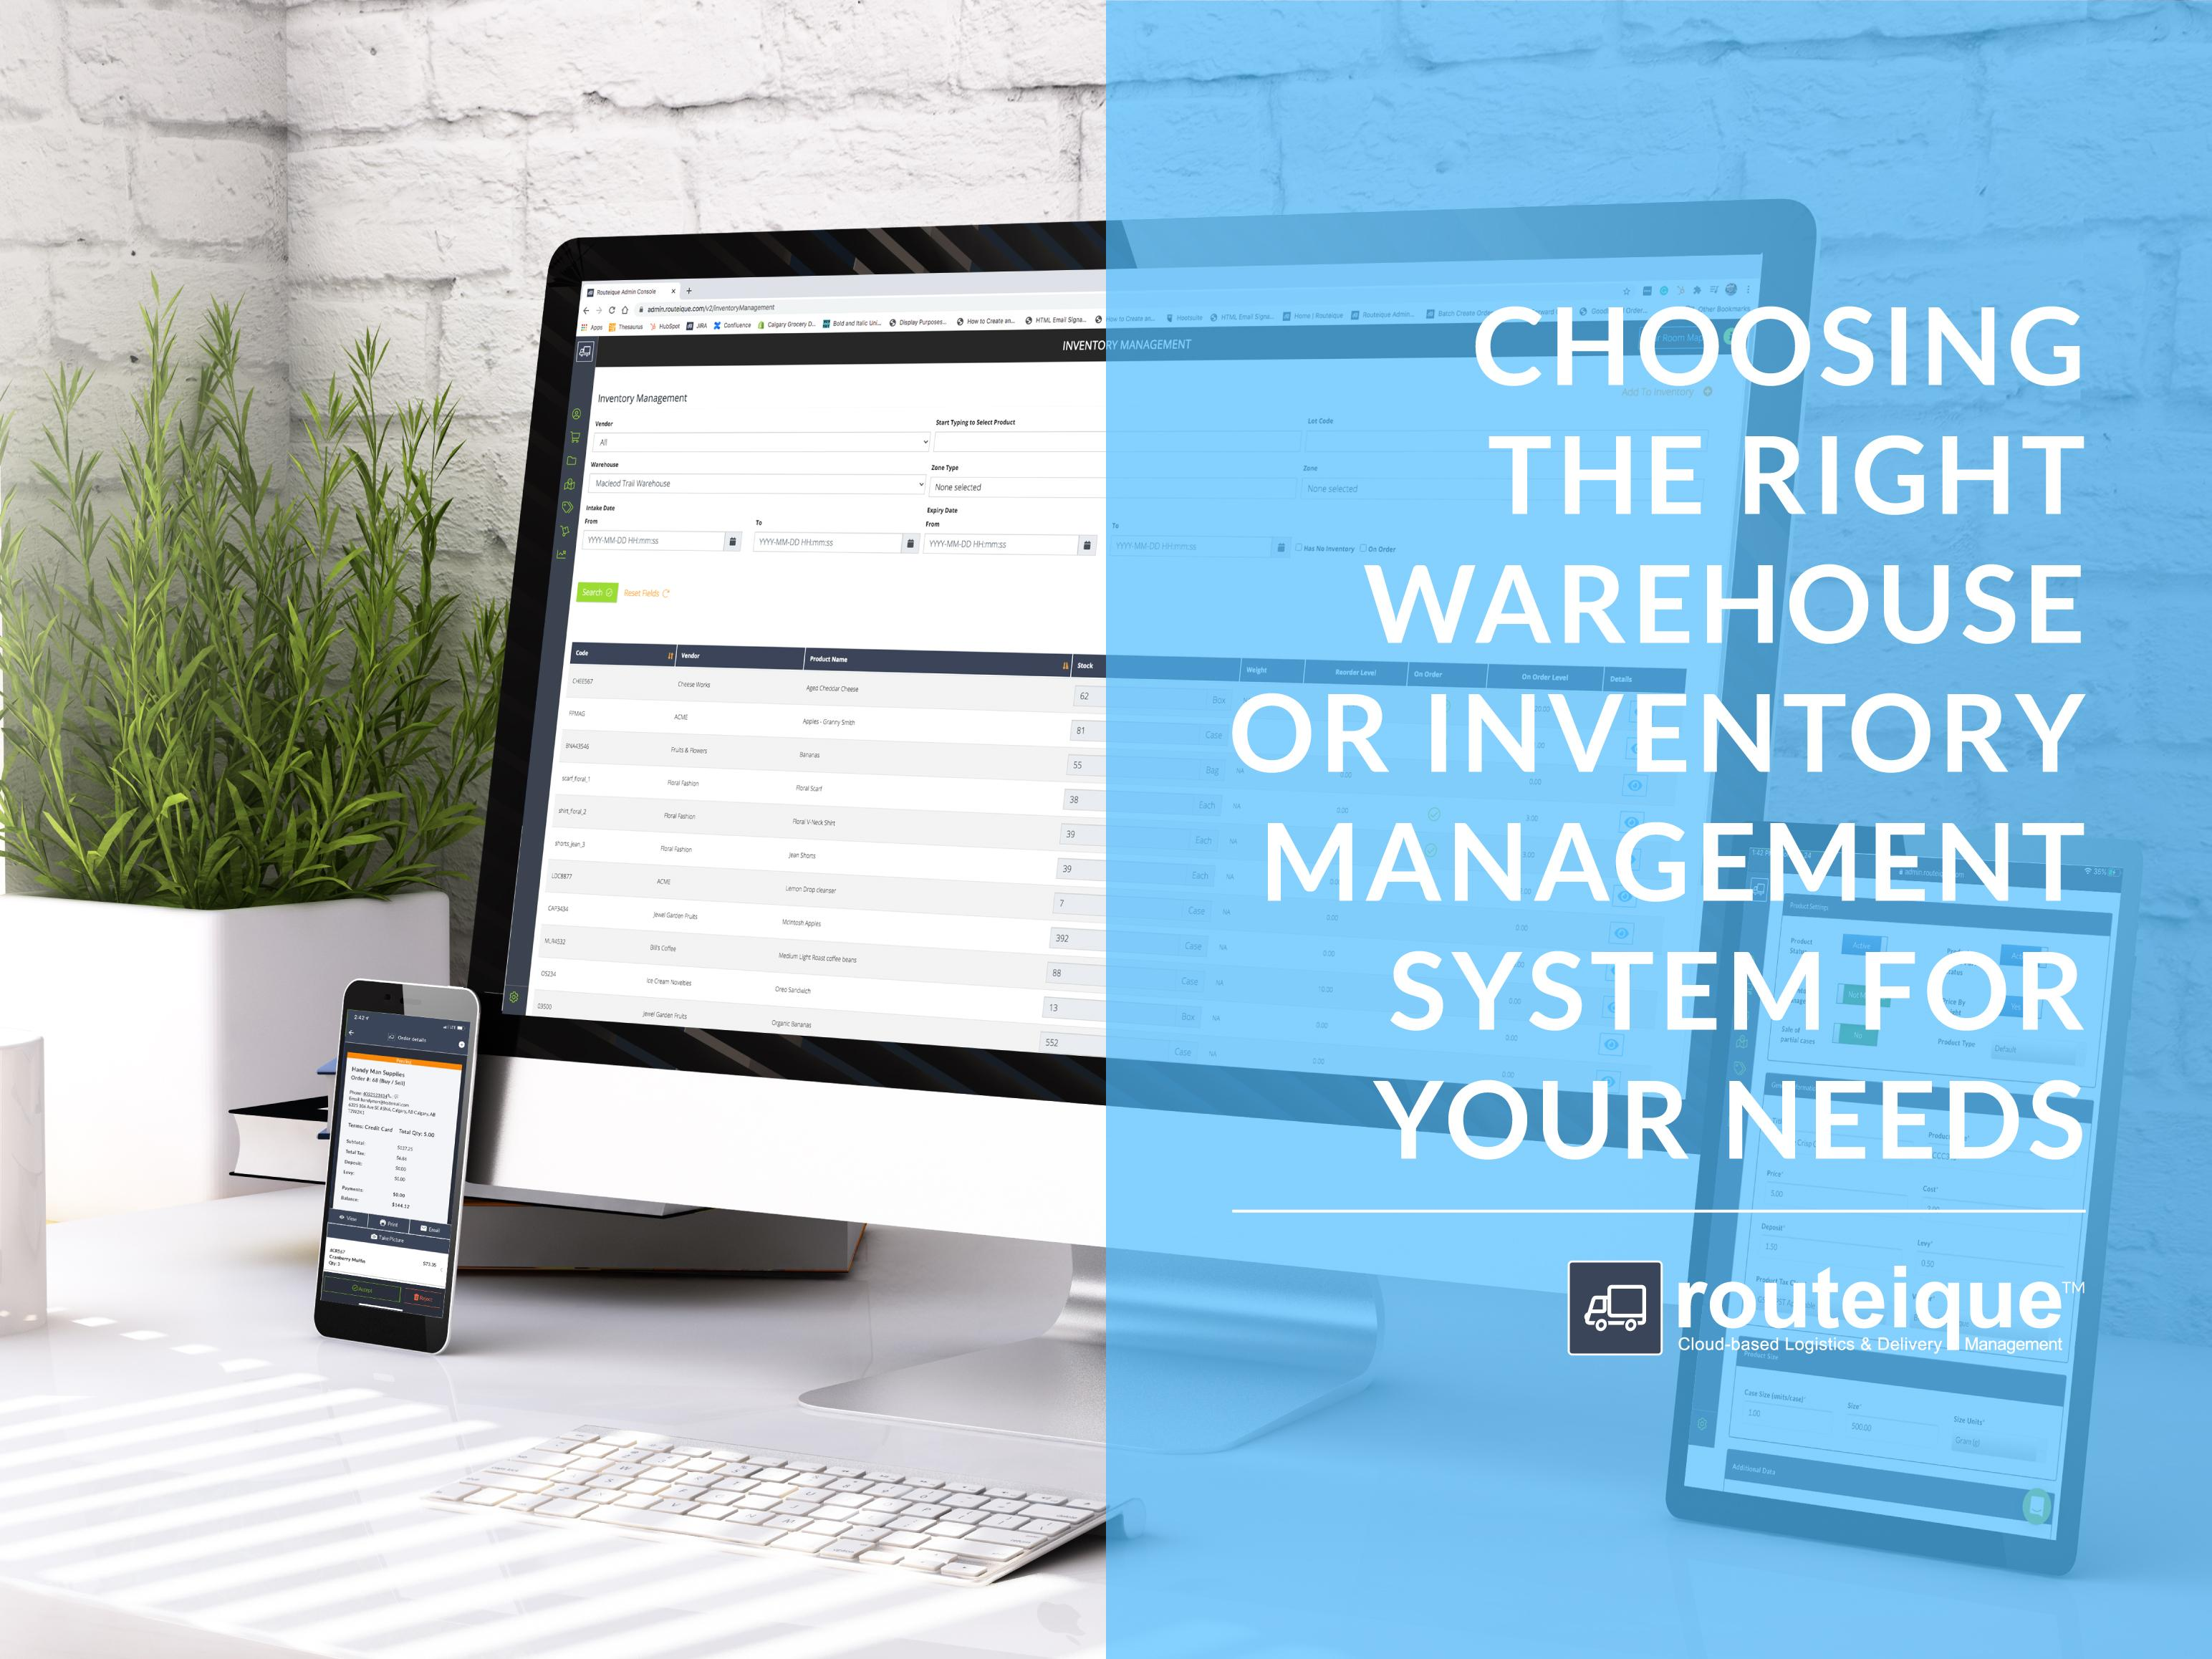 Choosing the Right Inventory Management System Blog